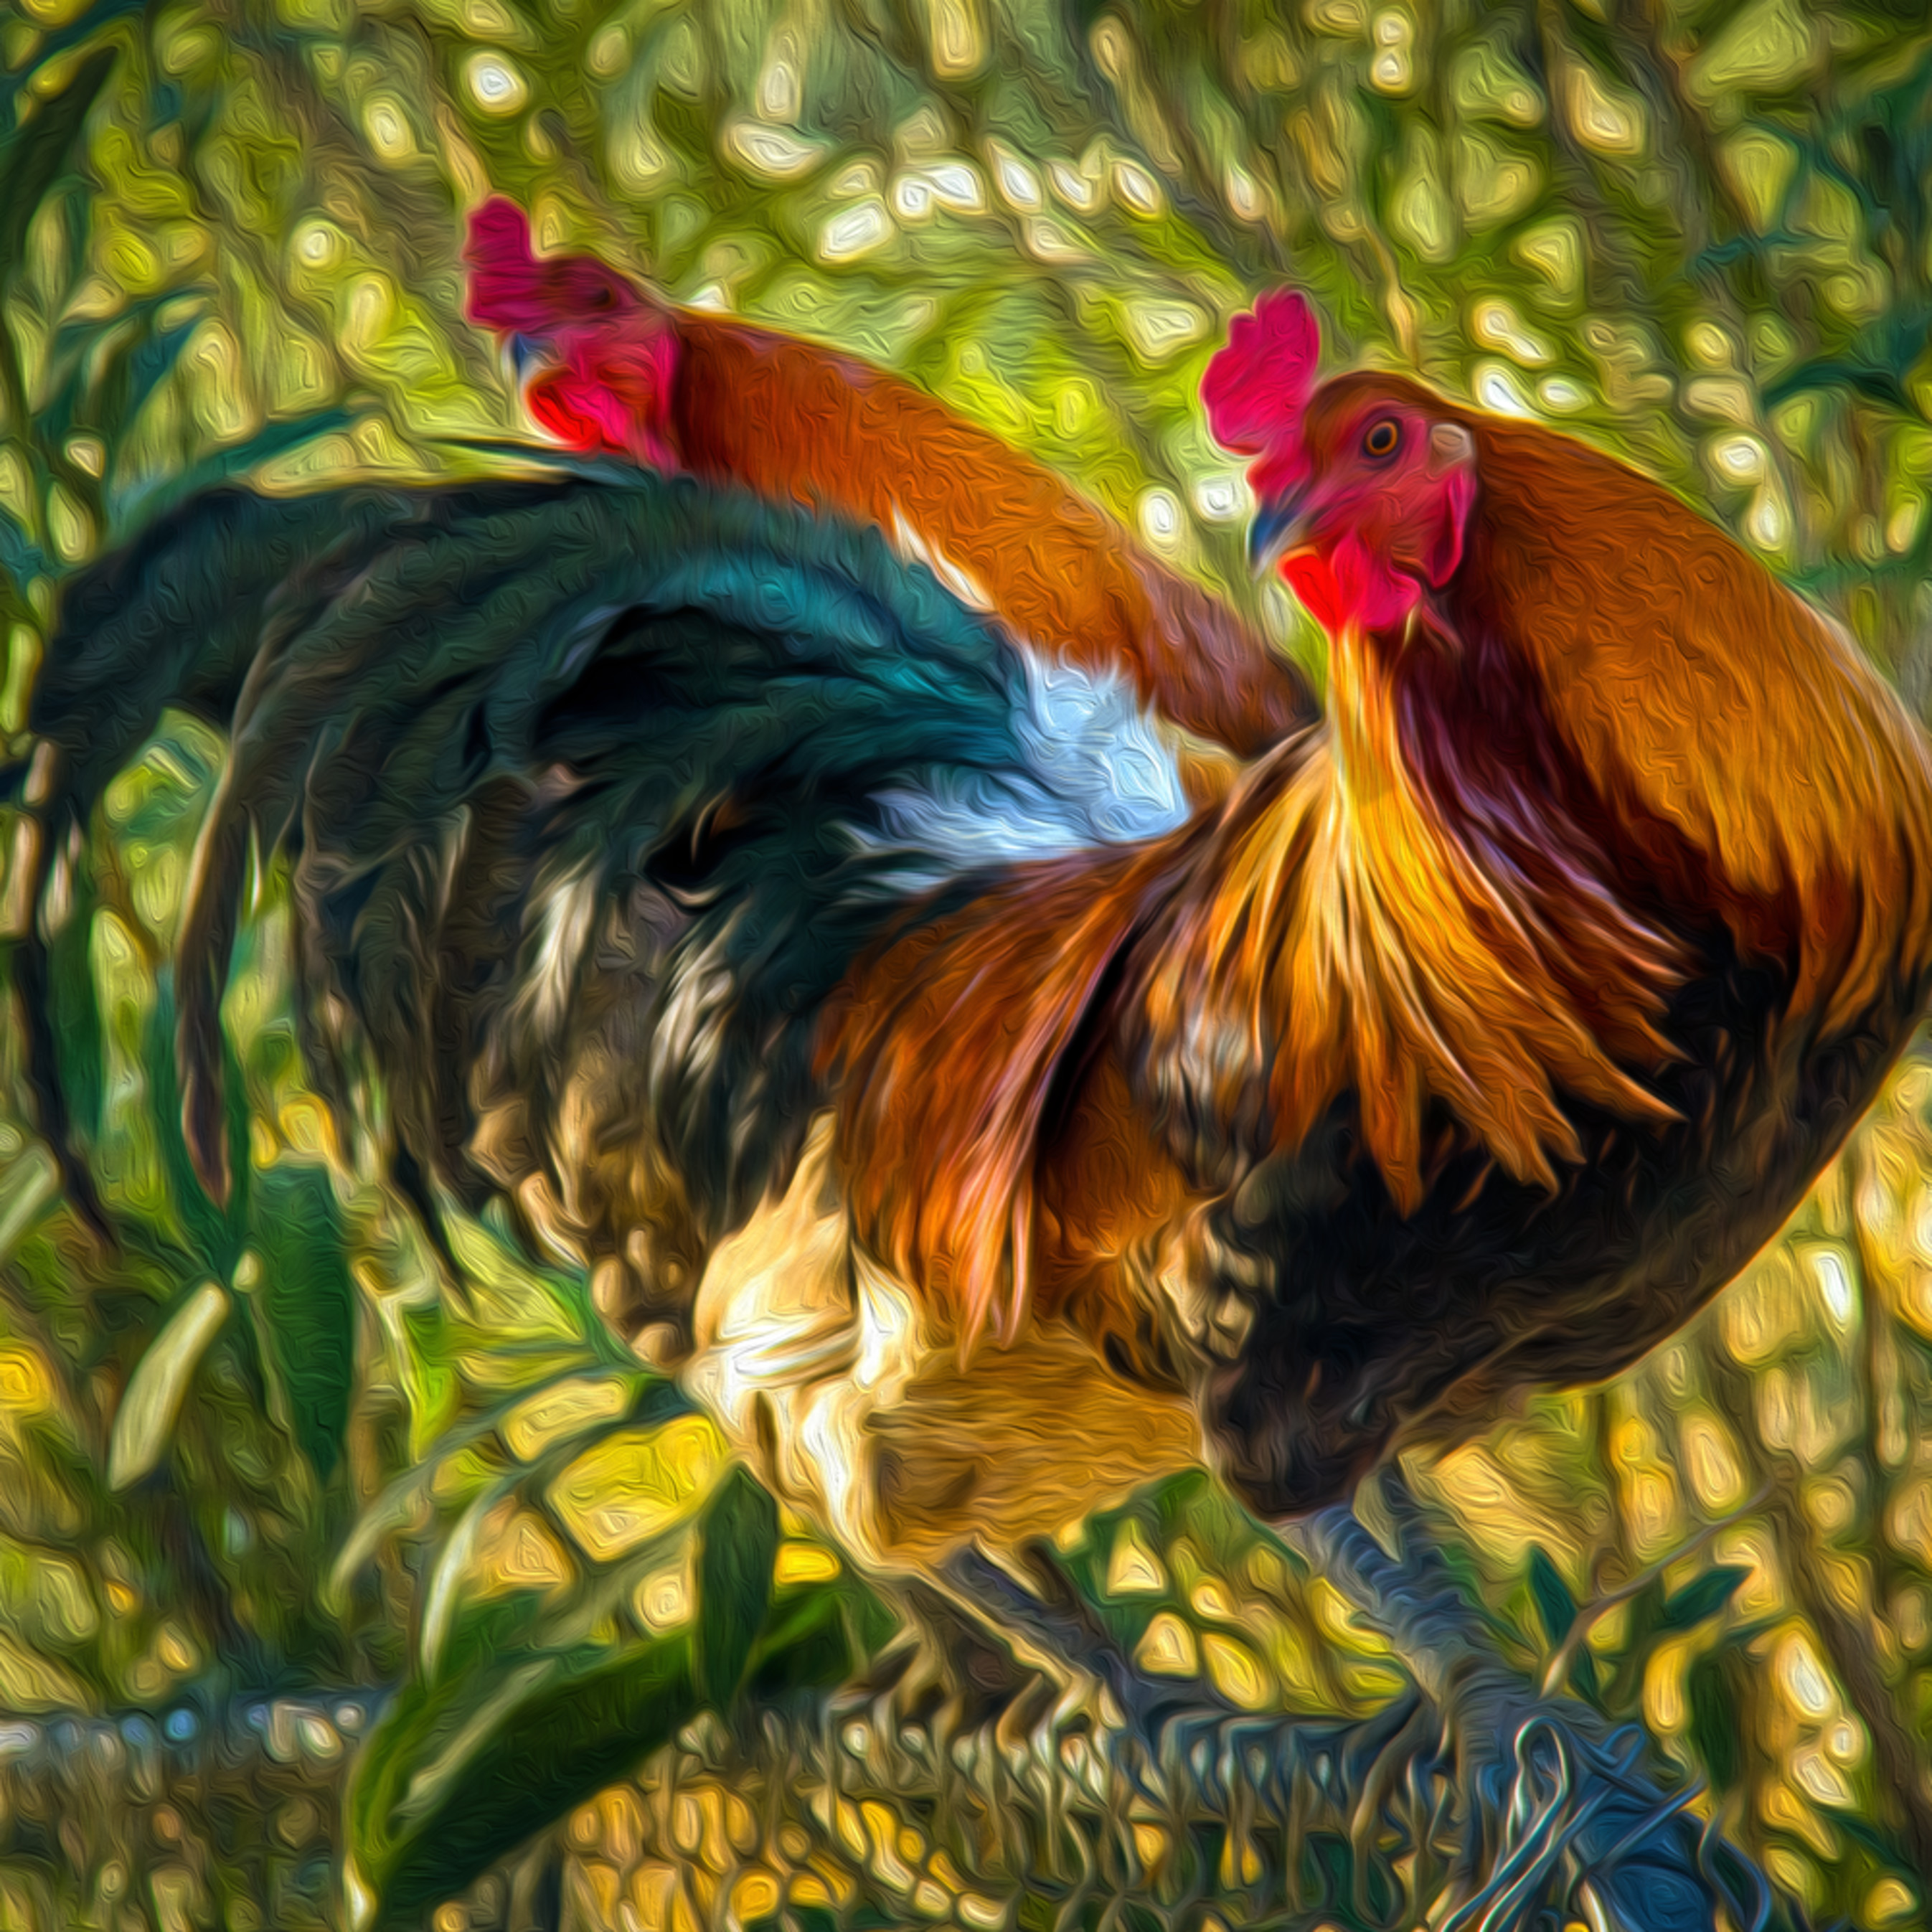 Amy s roosters2 oil cggyur